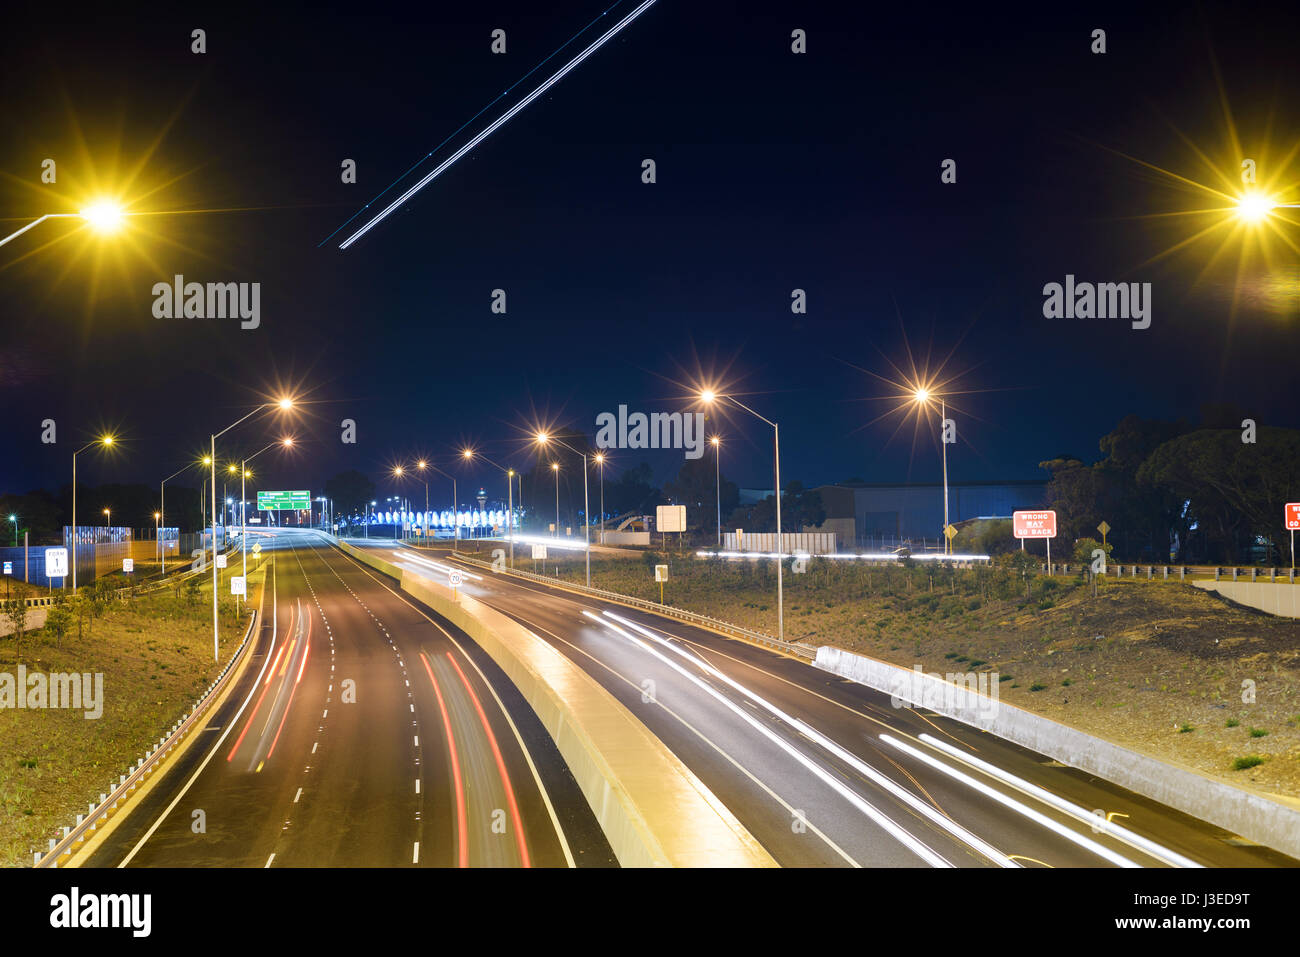 Flowing Traffic Stock Photos & Flowing Traffic Stock Images - Alamy